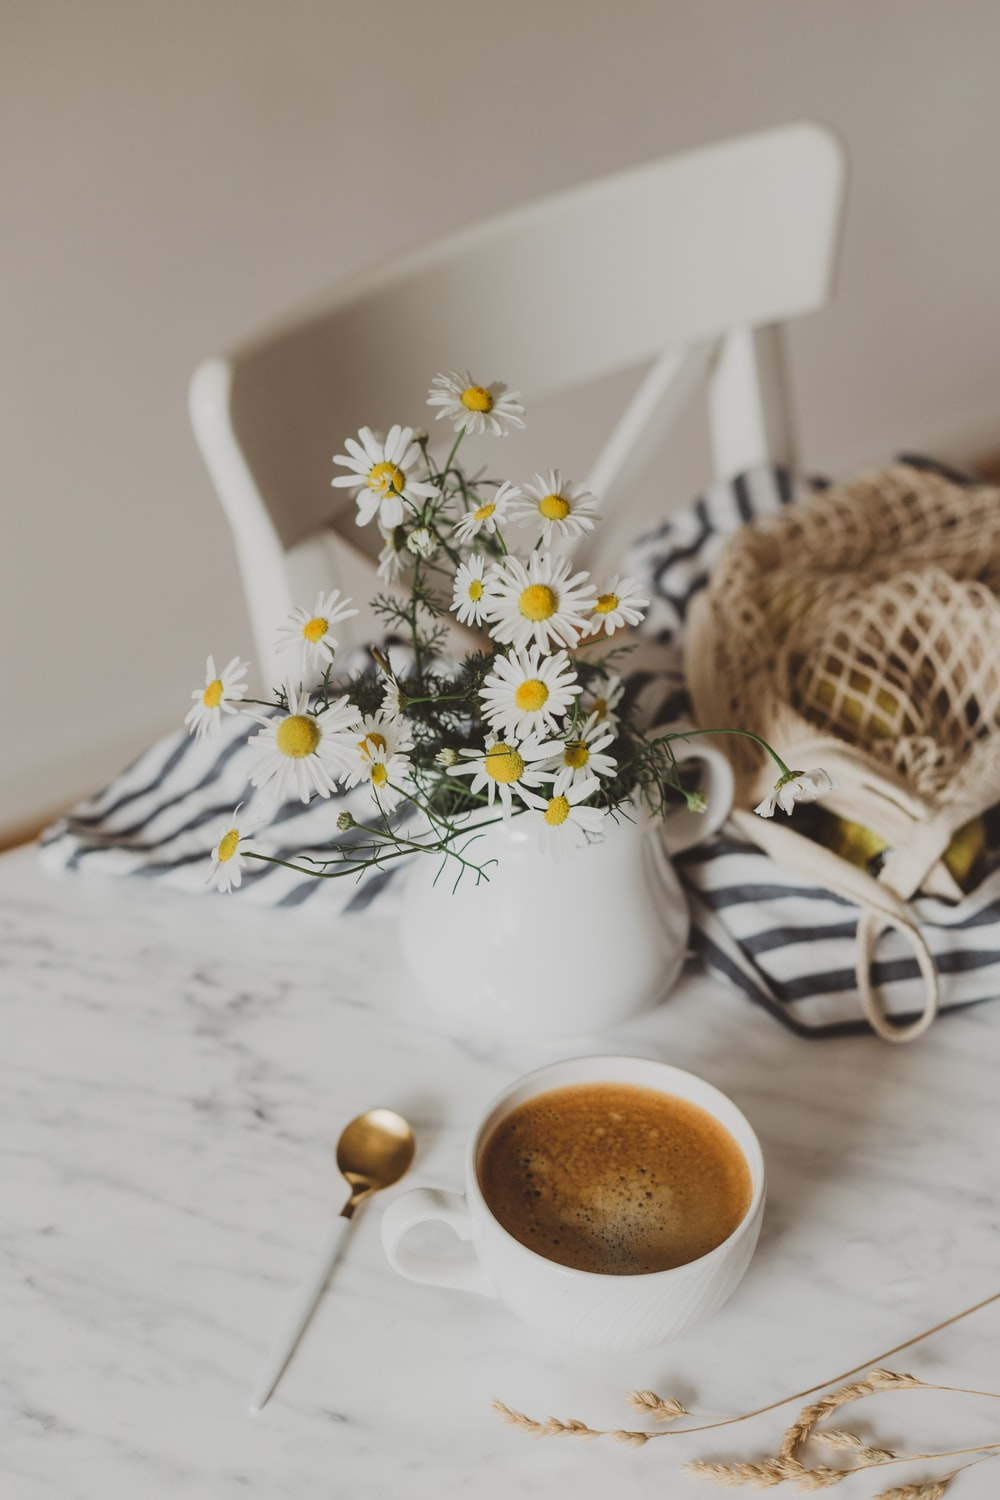 cappuccino near white and yellow flowers in vase on white table